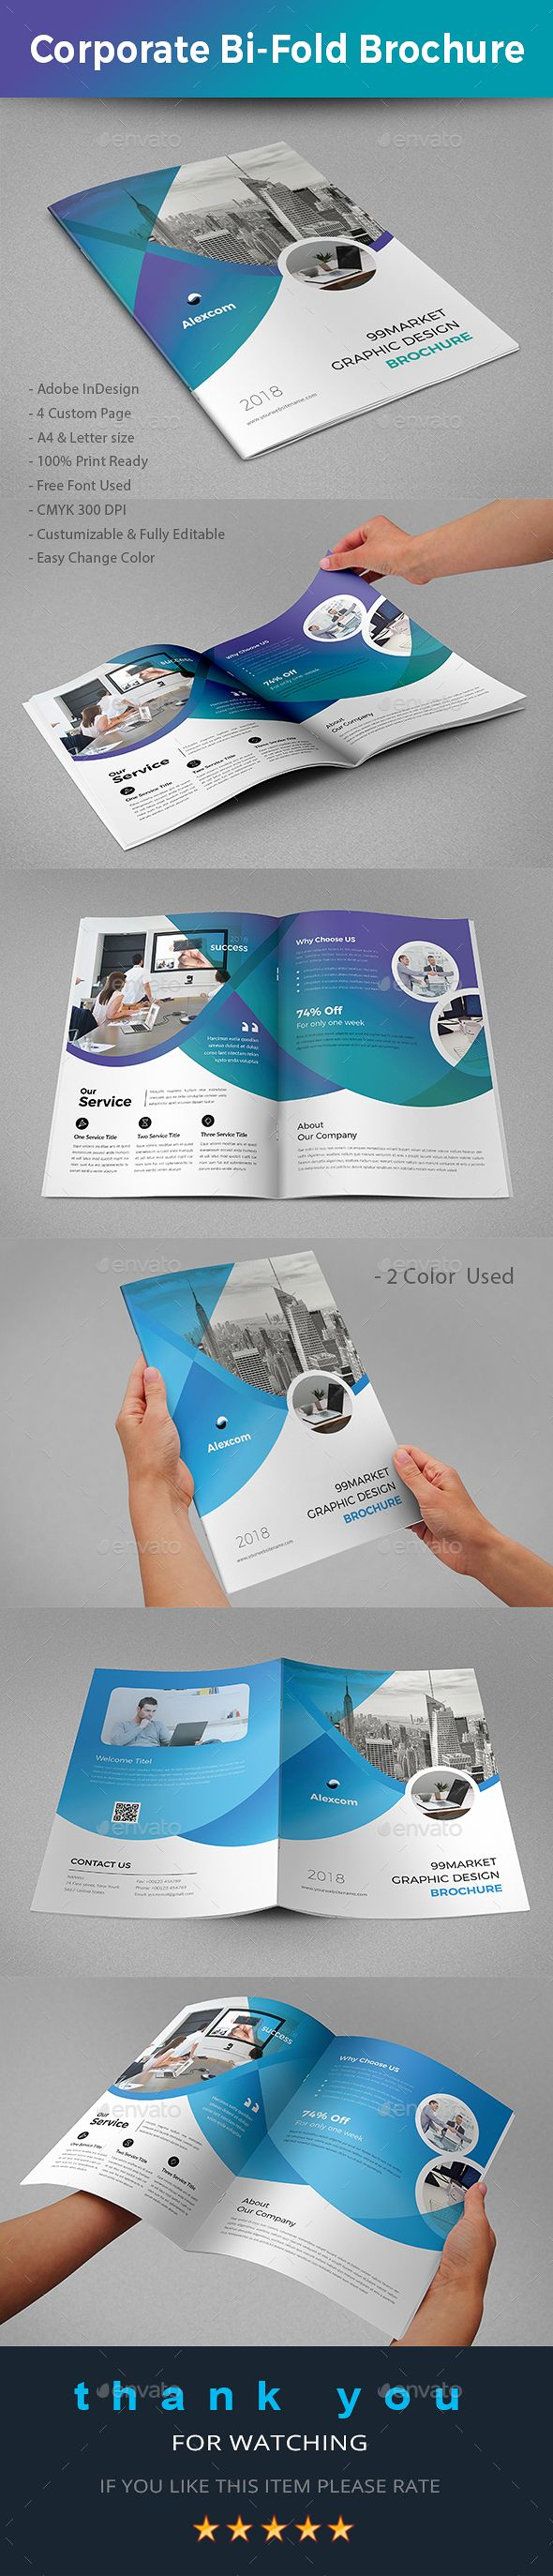 Corporate Bi Fold Brochure Template Indesign Indd A4 Us Letter